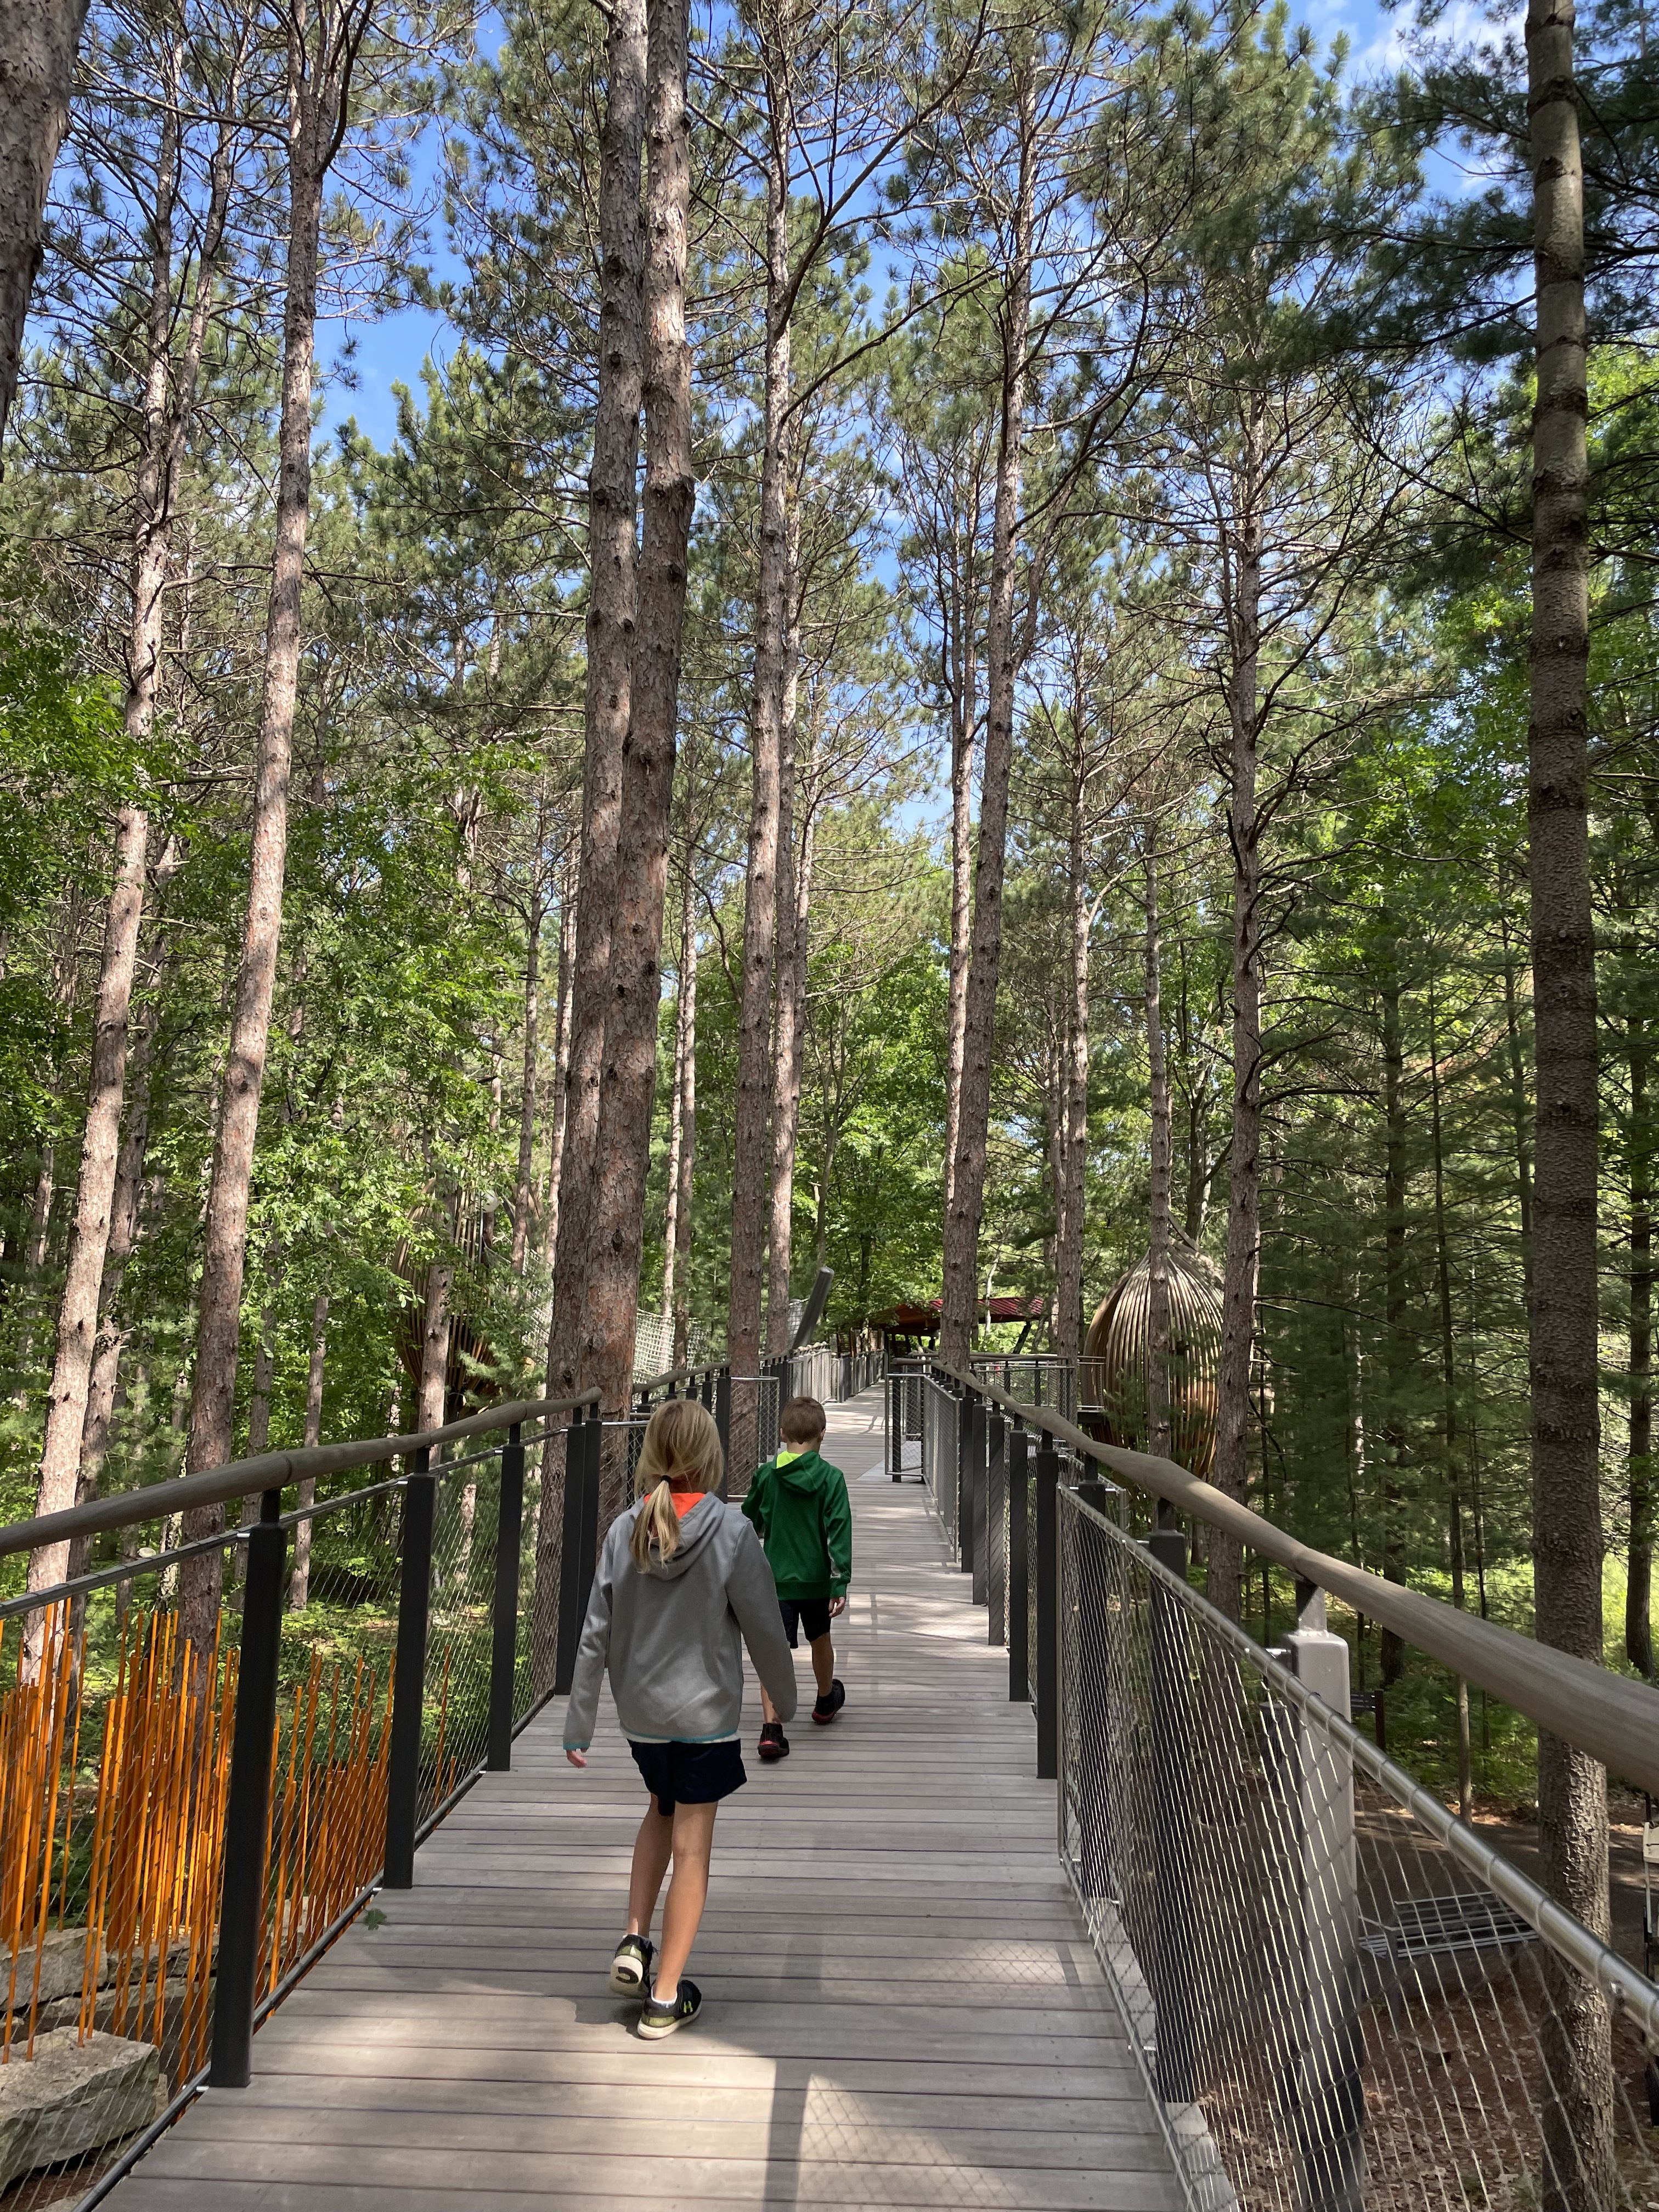 Tips For Visiting Dow Gardens and Whiting Forest in Midland With Kids